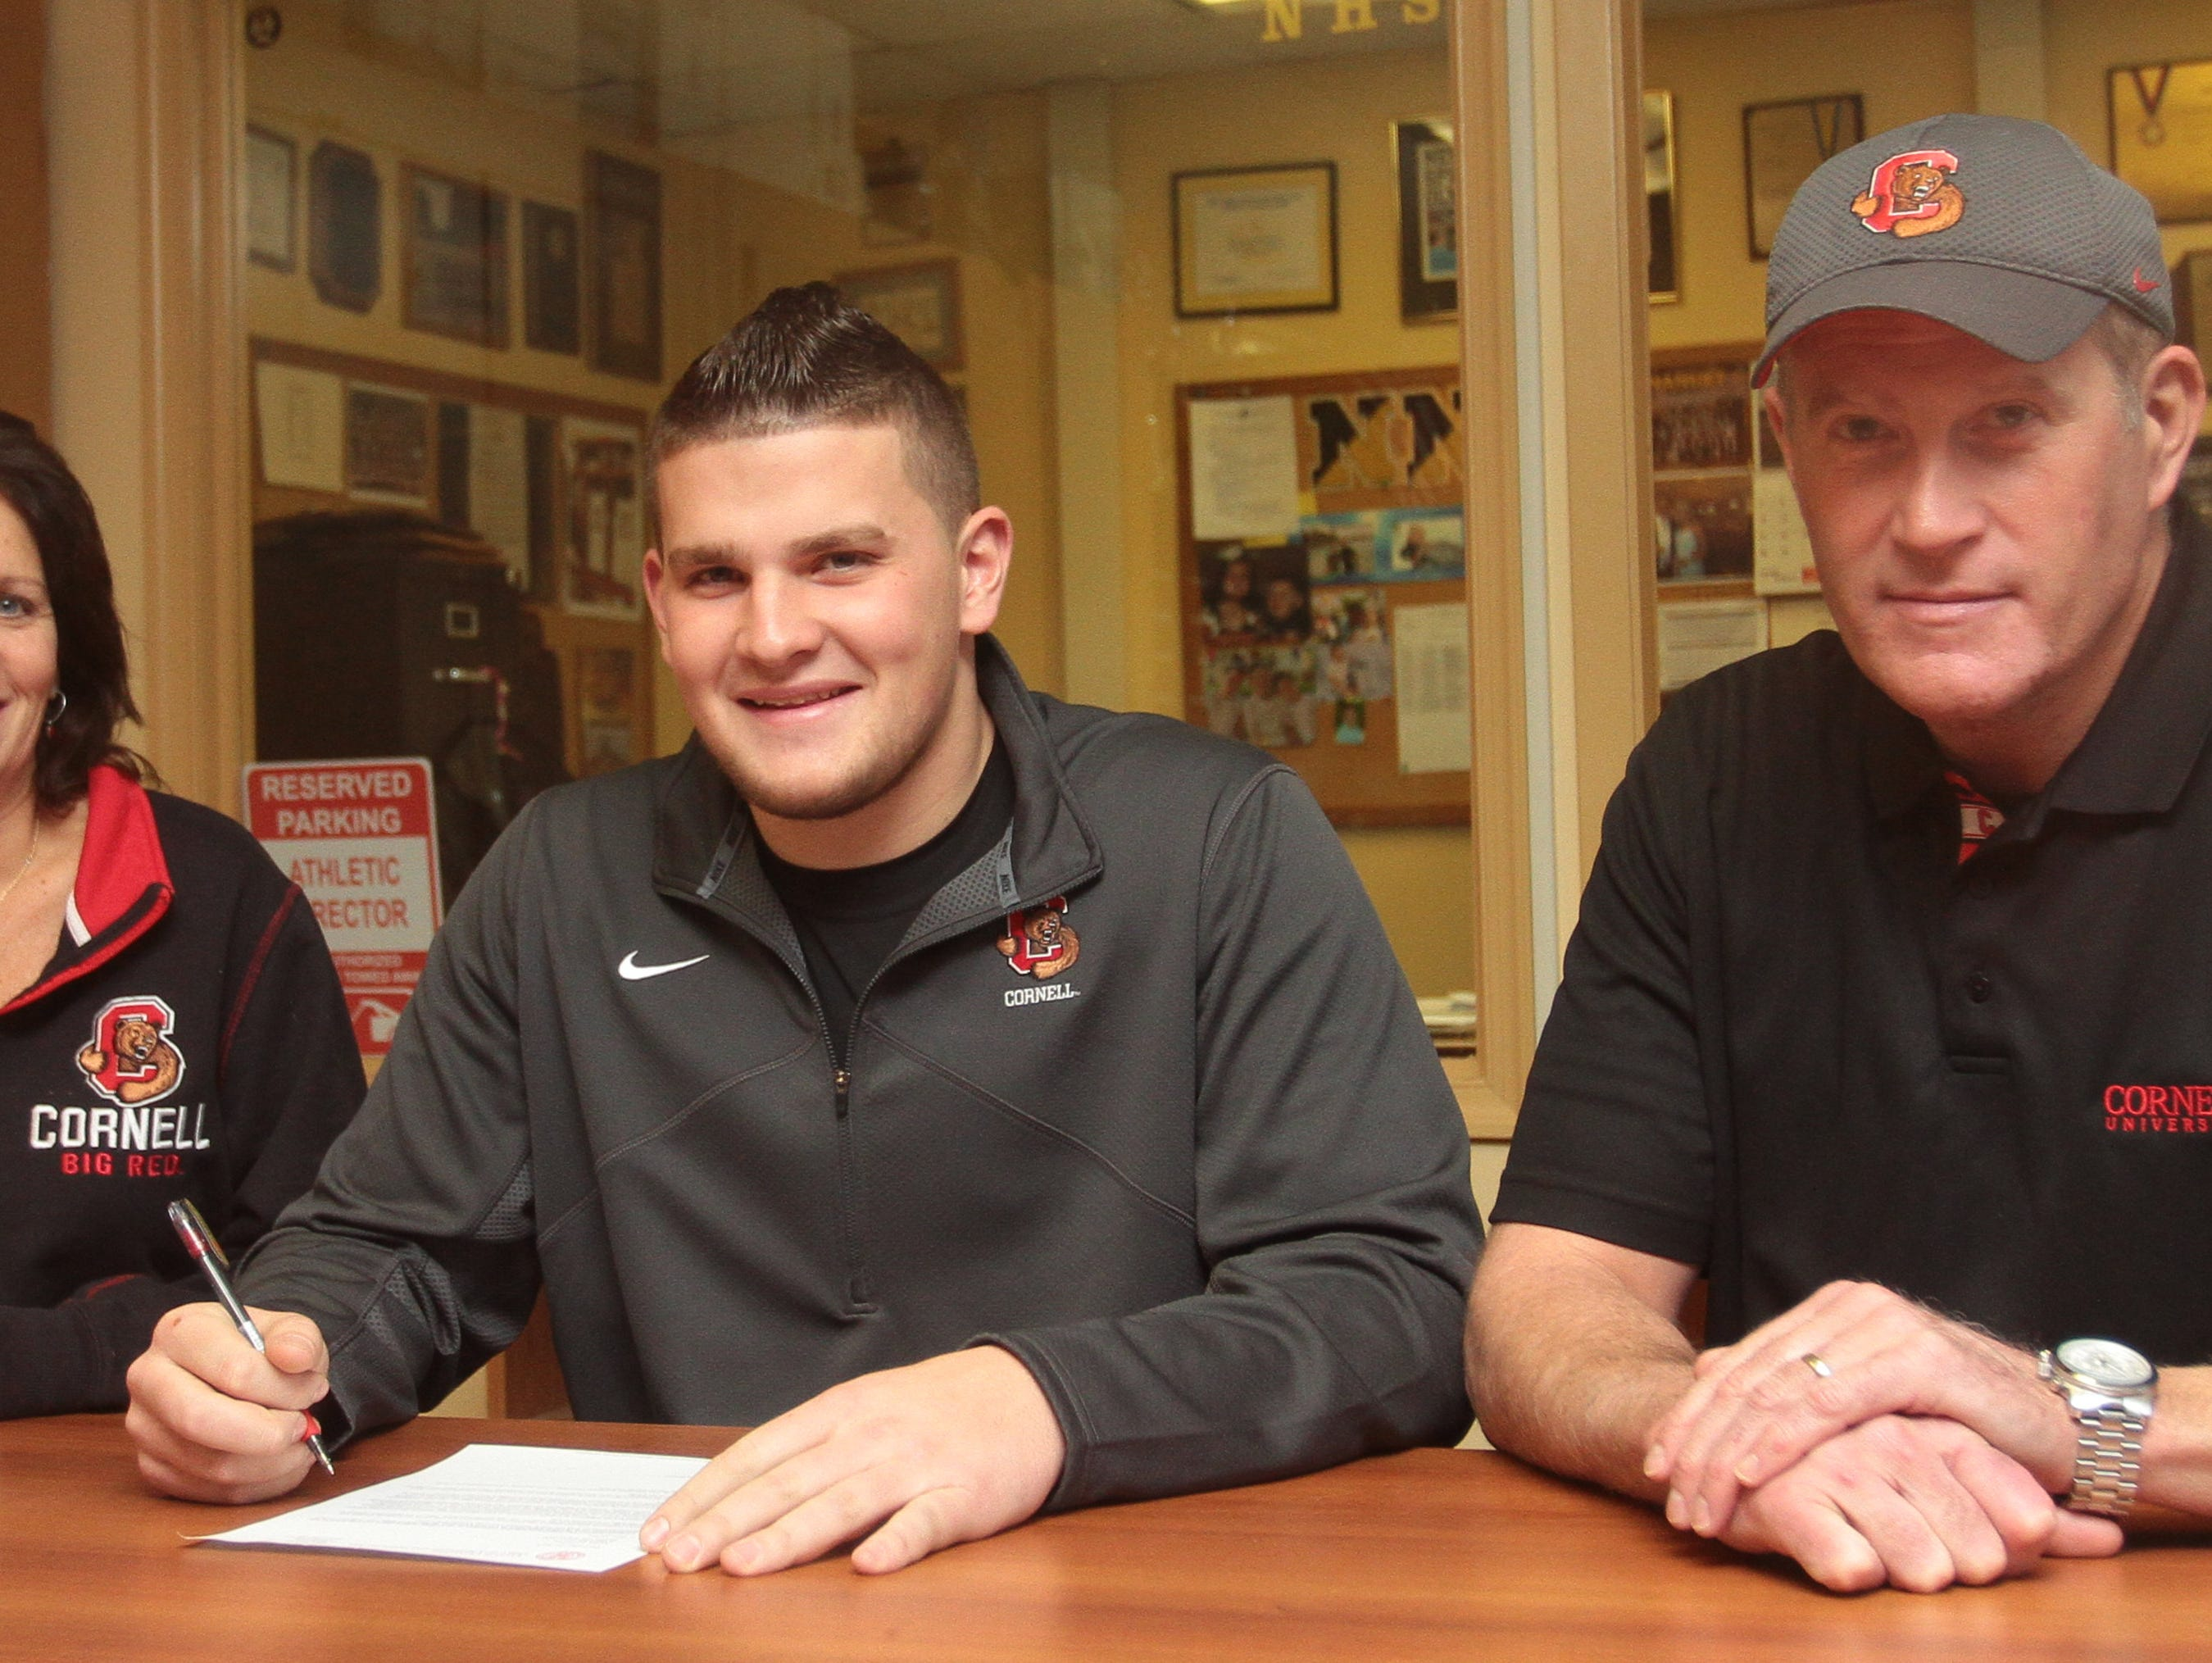 Jordan Landsman (center) with his parents Lynn (left) and Michael (right) on National Signing Day Feb. 3, 2016 at Nanuet Senior High School